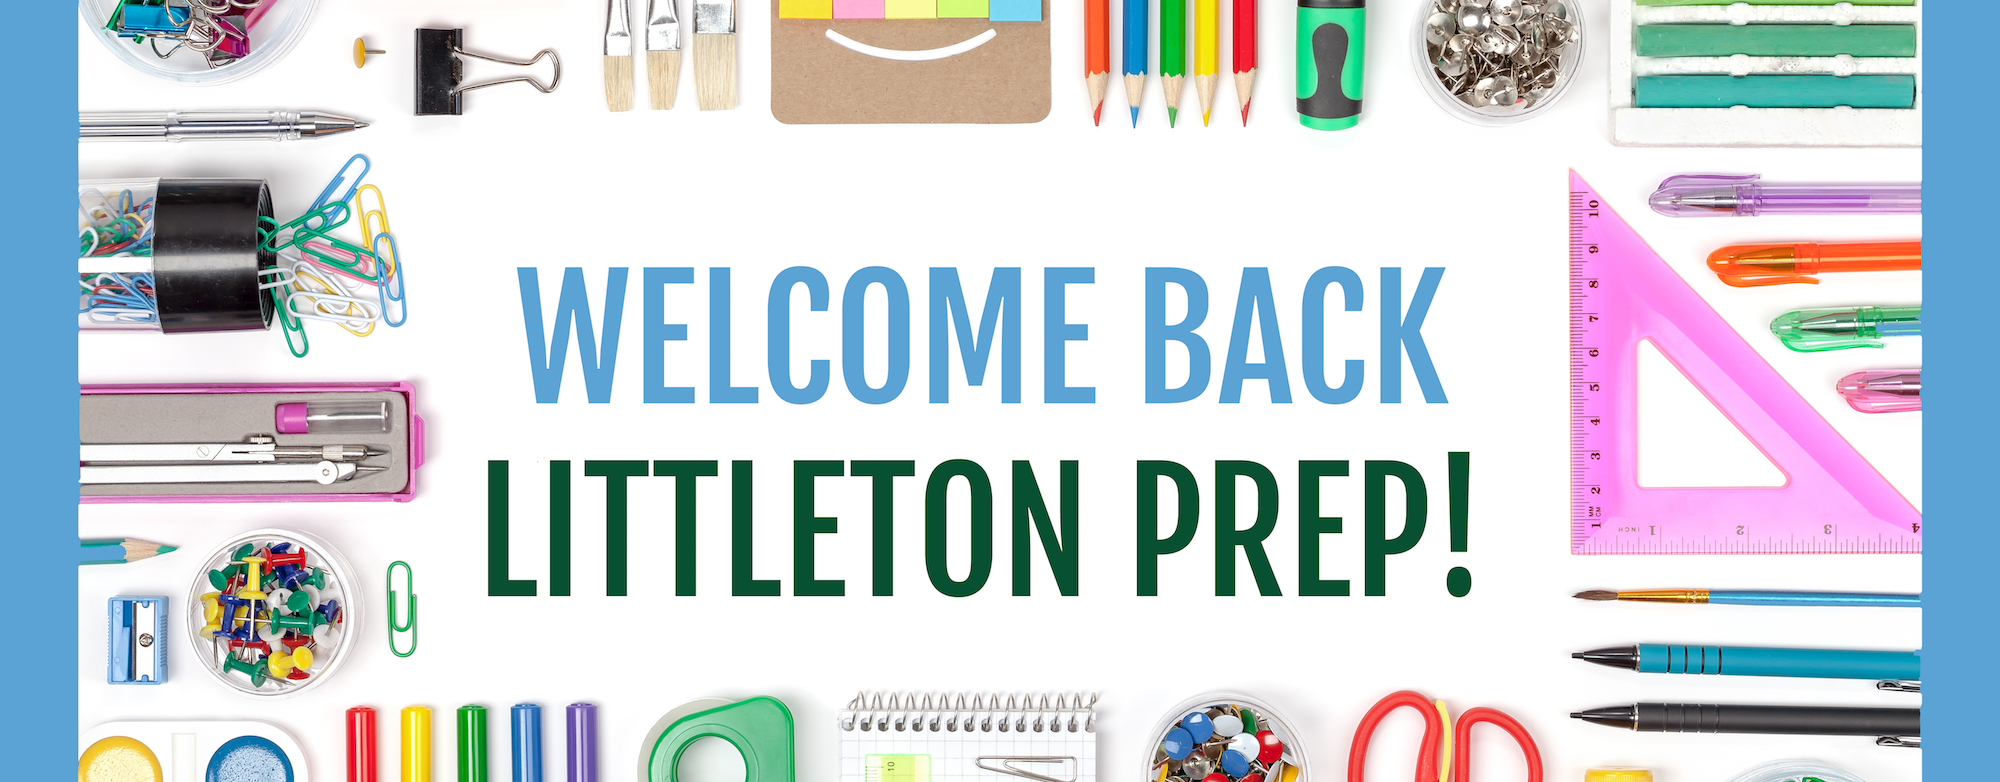 Welcome Back Littleton Prep